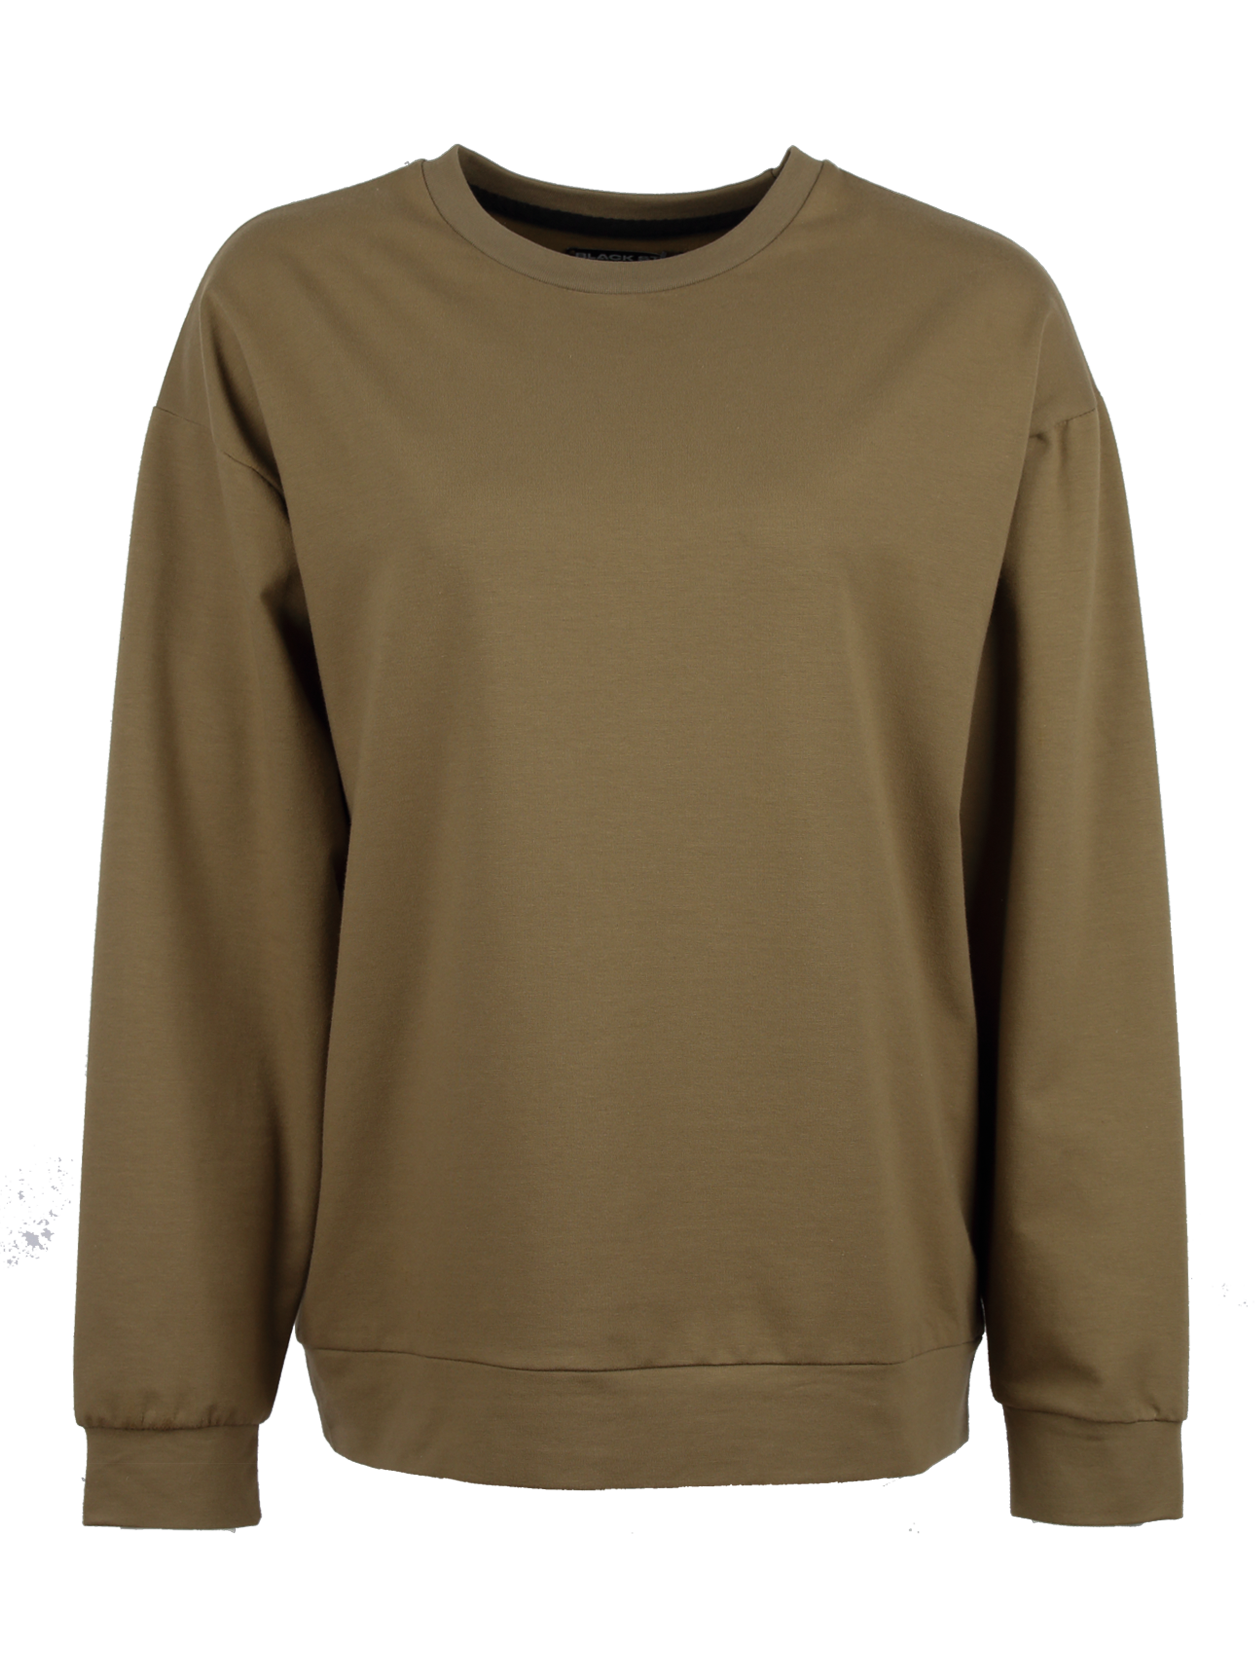 Womens sweatshirt 13Soft and comfy sweatshirt by Black Star Wear. Oversized fit, drop shoulder seams, cuffs, round neck, natural cotton blend. Black Star 13 print on the back. Avaliable in khaki.<br><br>size: S<br>color: Khaki<br>gender: female